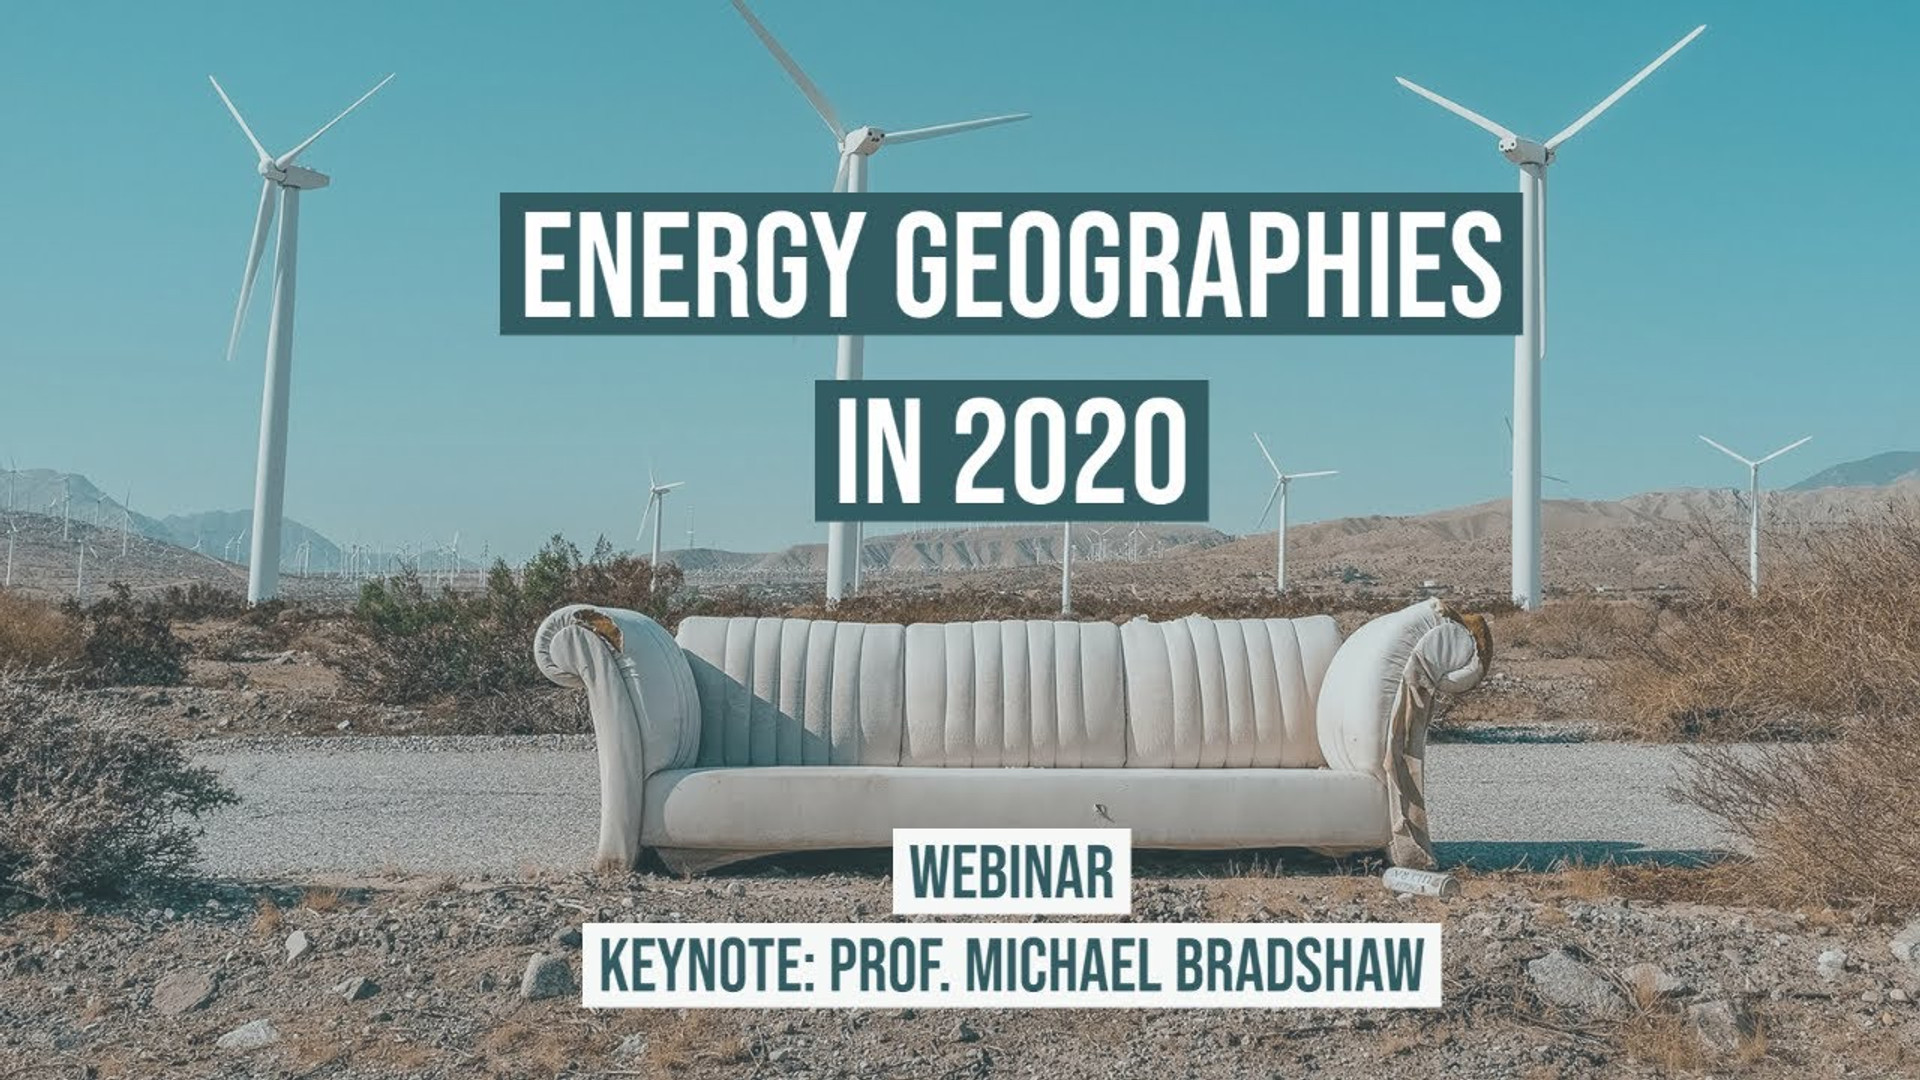 Webinar: Energy Geographies in 2020 - Keynote: Prof. Michael Bradshaw